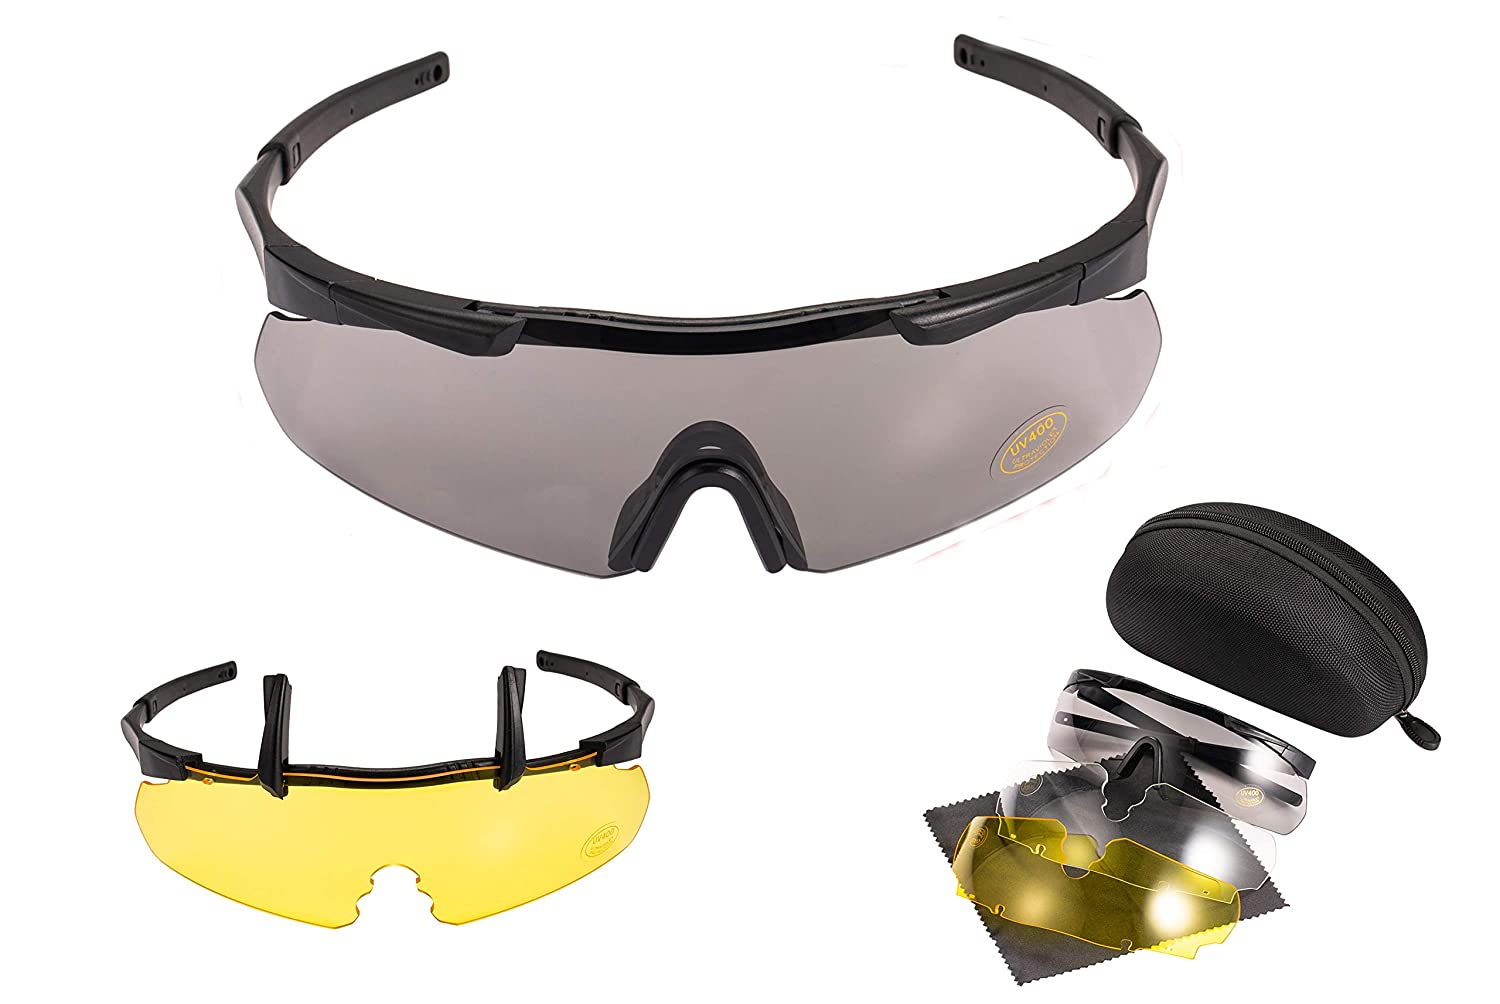 Ocean Loong Tactical Airsoft Shooting Safety Goggles with Set of Three High Strength Polycarbonate UV400 & An-ti fog Interchangeable Lenses,Meet ANSI/ISEA Z87.1 & CE EN166 Standard